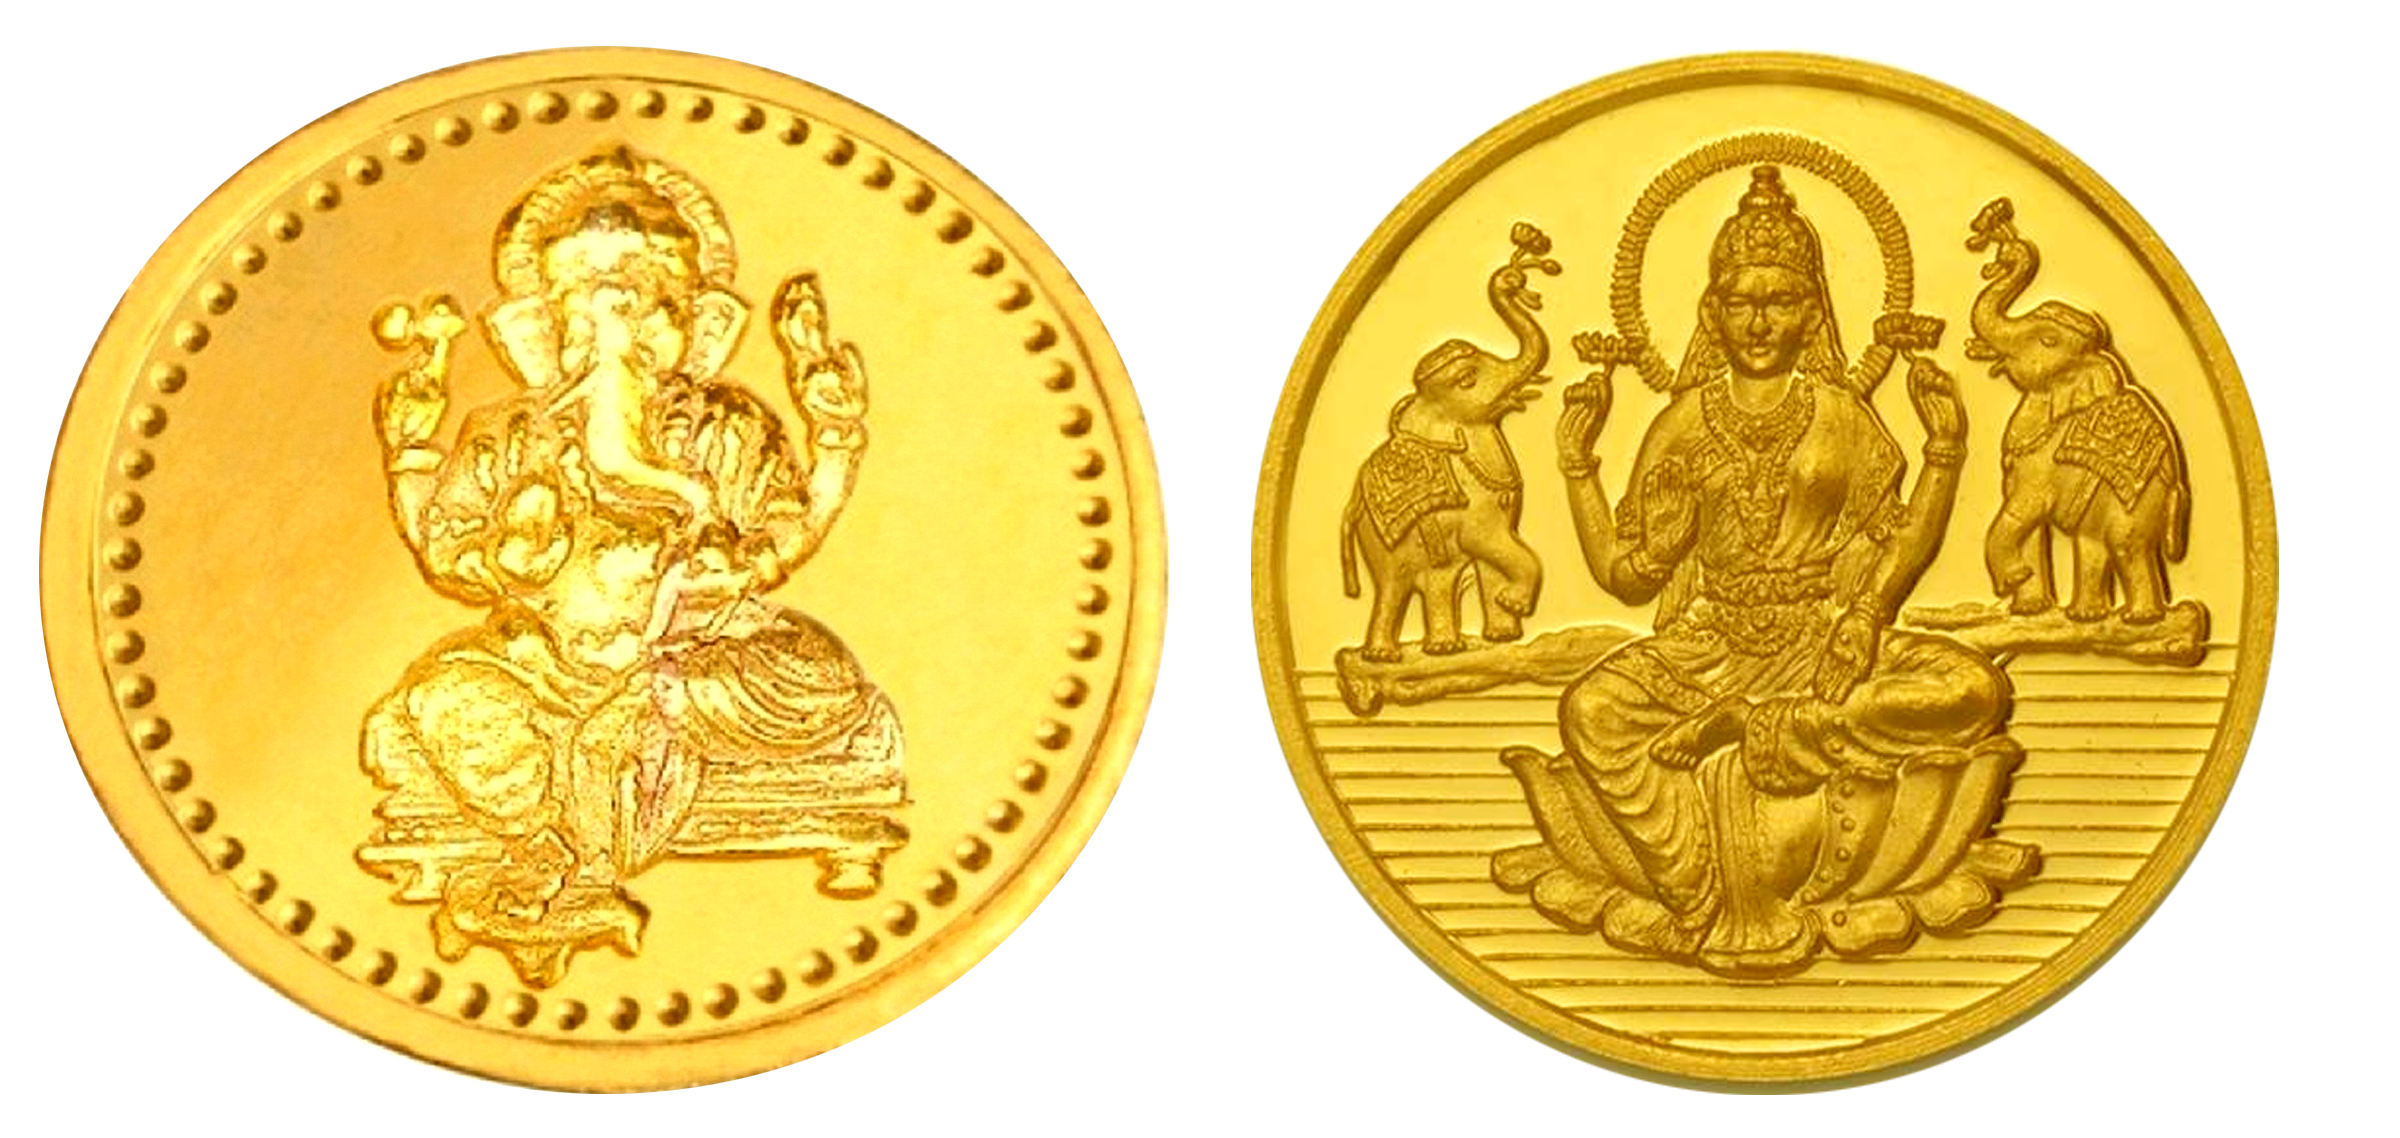 Laxmi and Ganesh images gold coin png - Coin HD PNG - Gold Coins PNG HD - Coins PNG HD